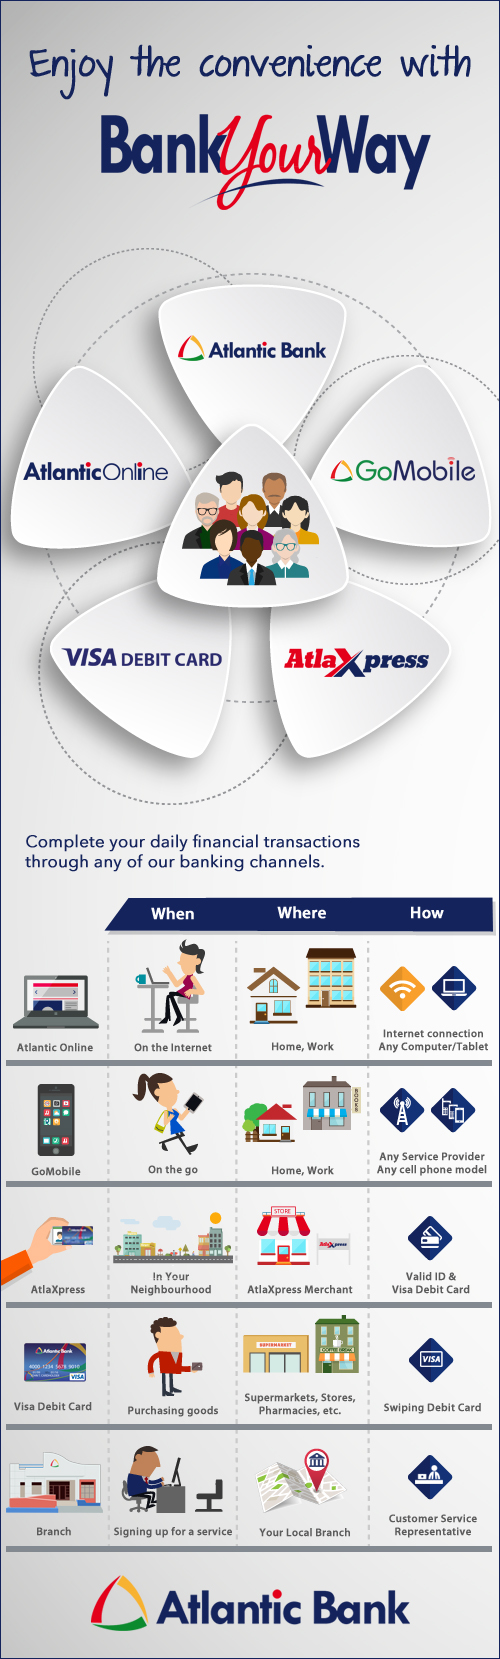 Save time with Atlantic Online, Debit Card, GoMobile, AtlaXpress or by visiting any of our branches.